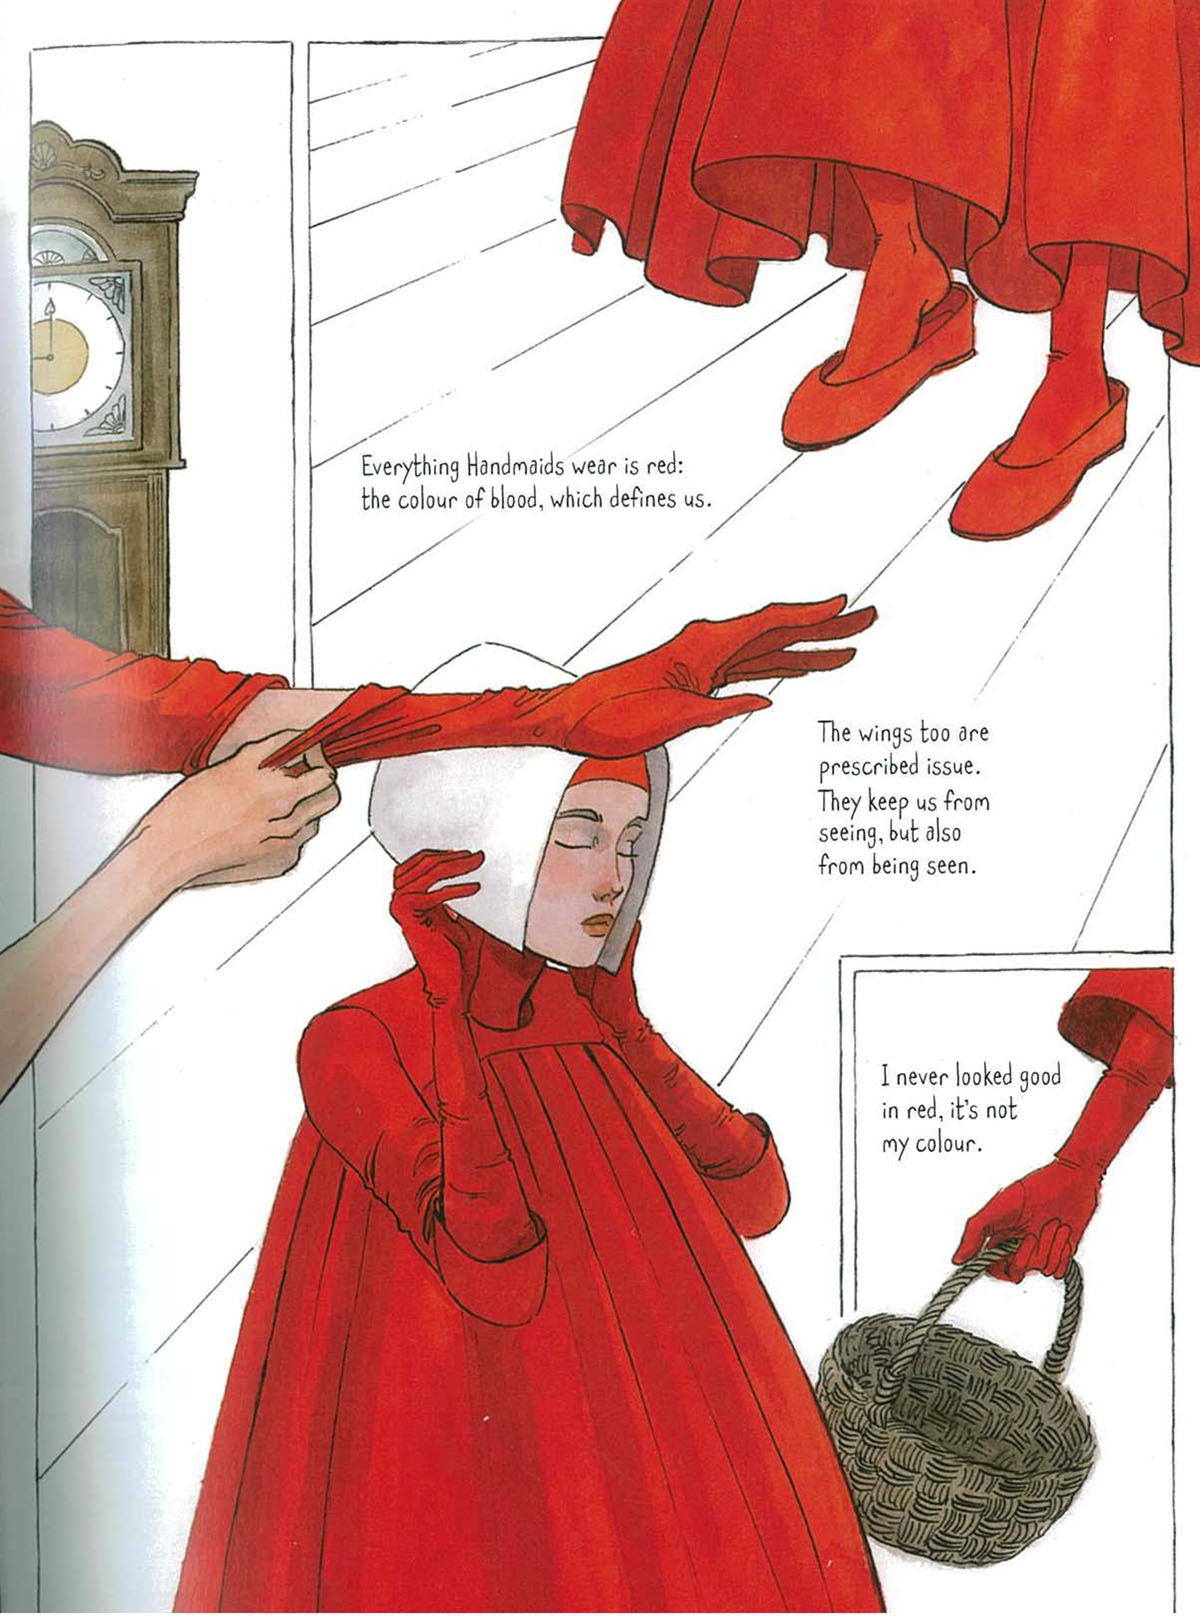 Composing the Handmaid: From Graphic Novel to Protest Icon